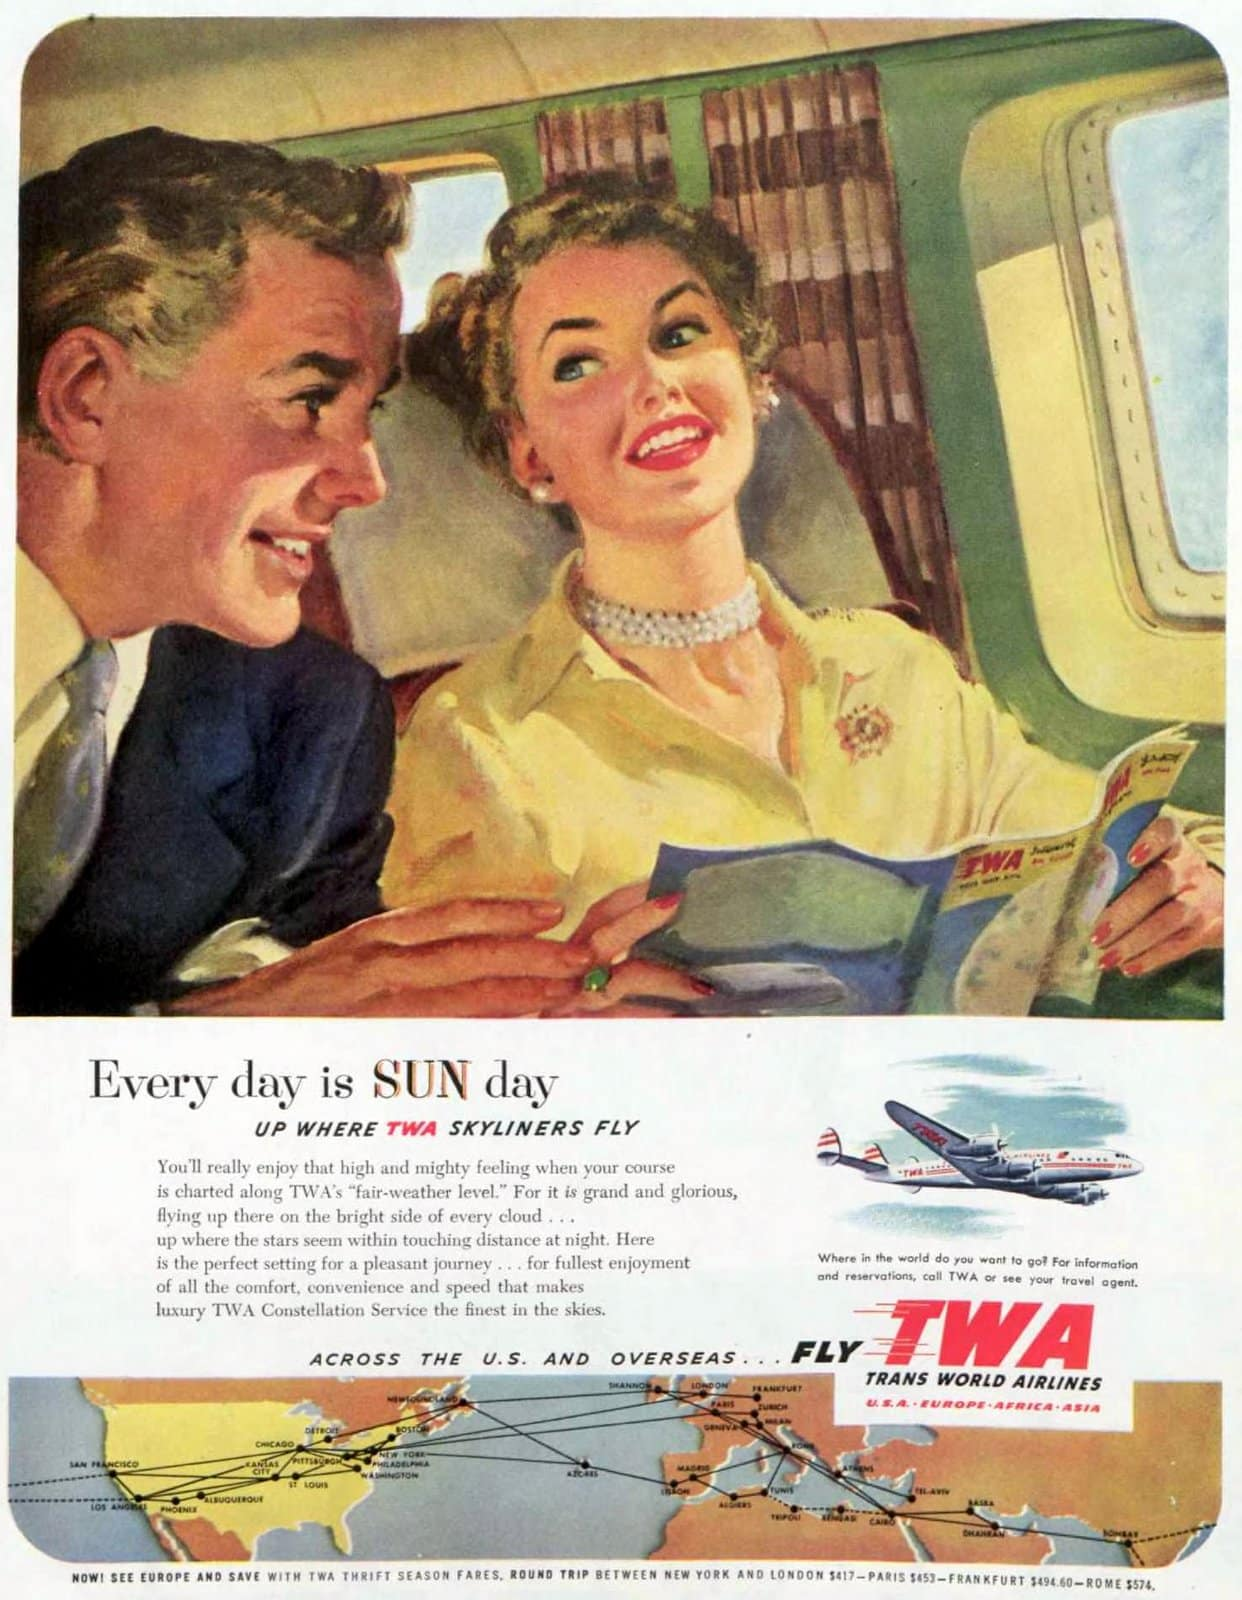 TWA with a happy couple flying (1952)